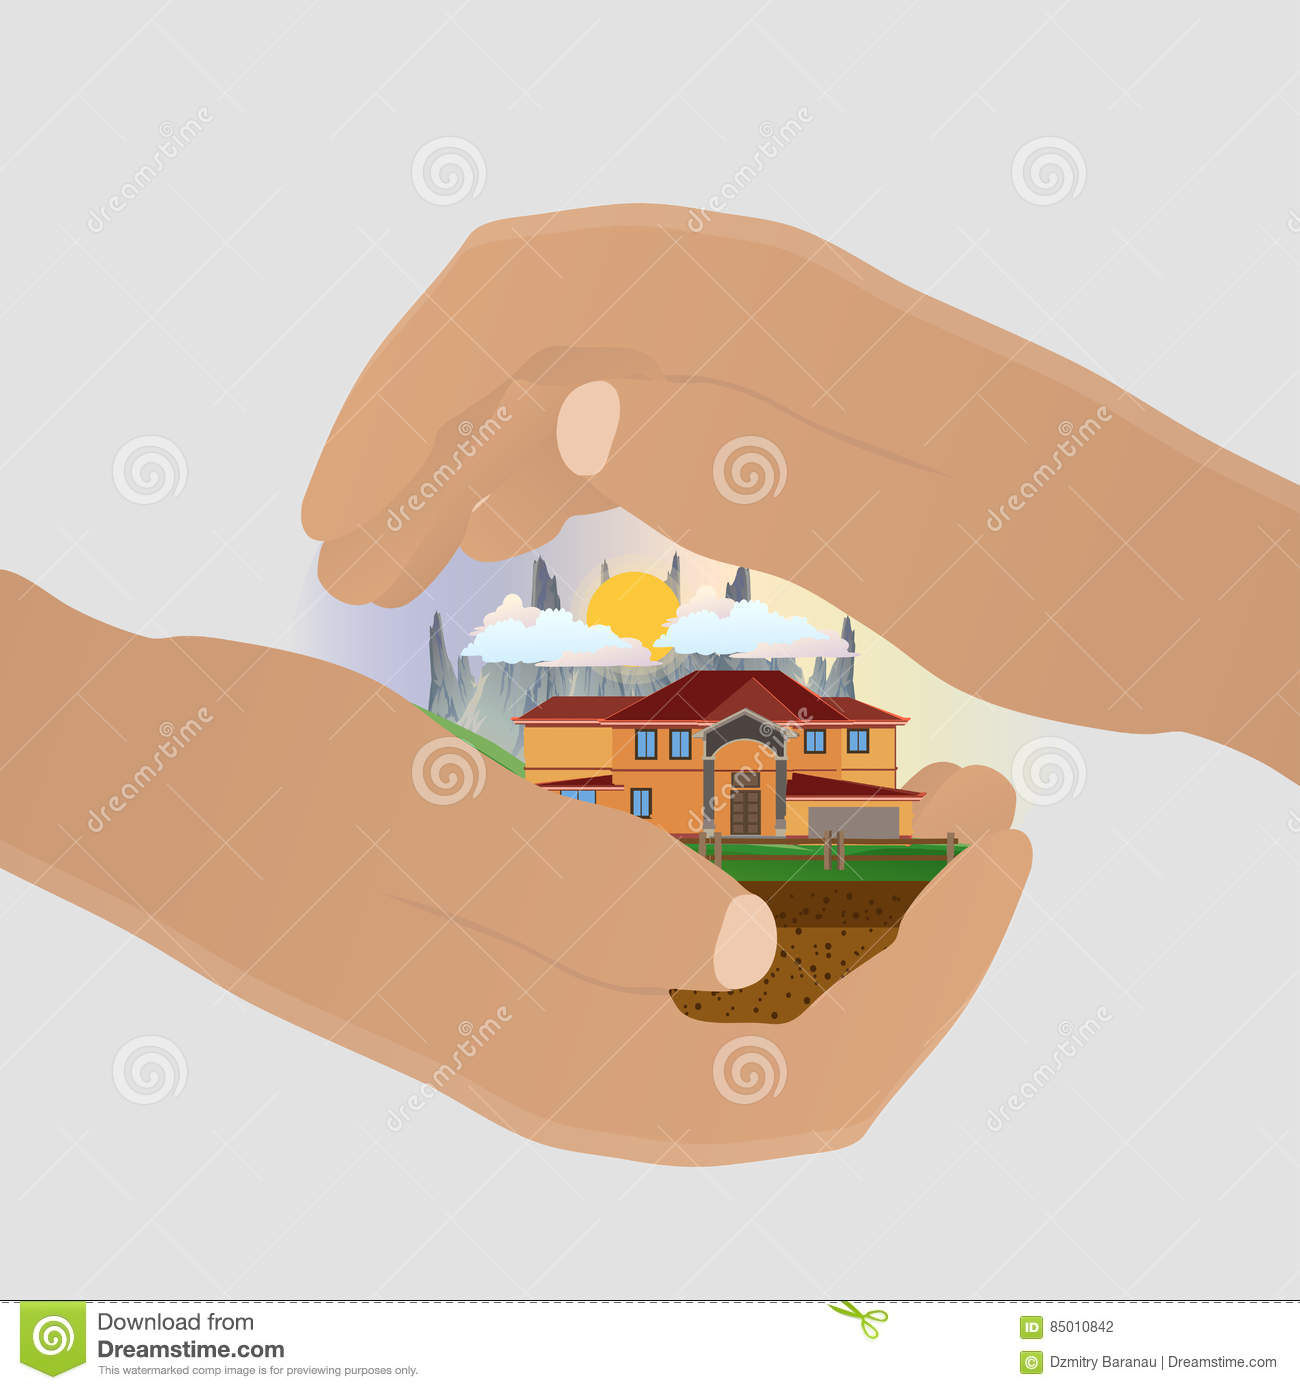 Home Insurance Safety Symbol Protected Hand From Danger Vector